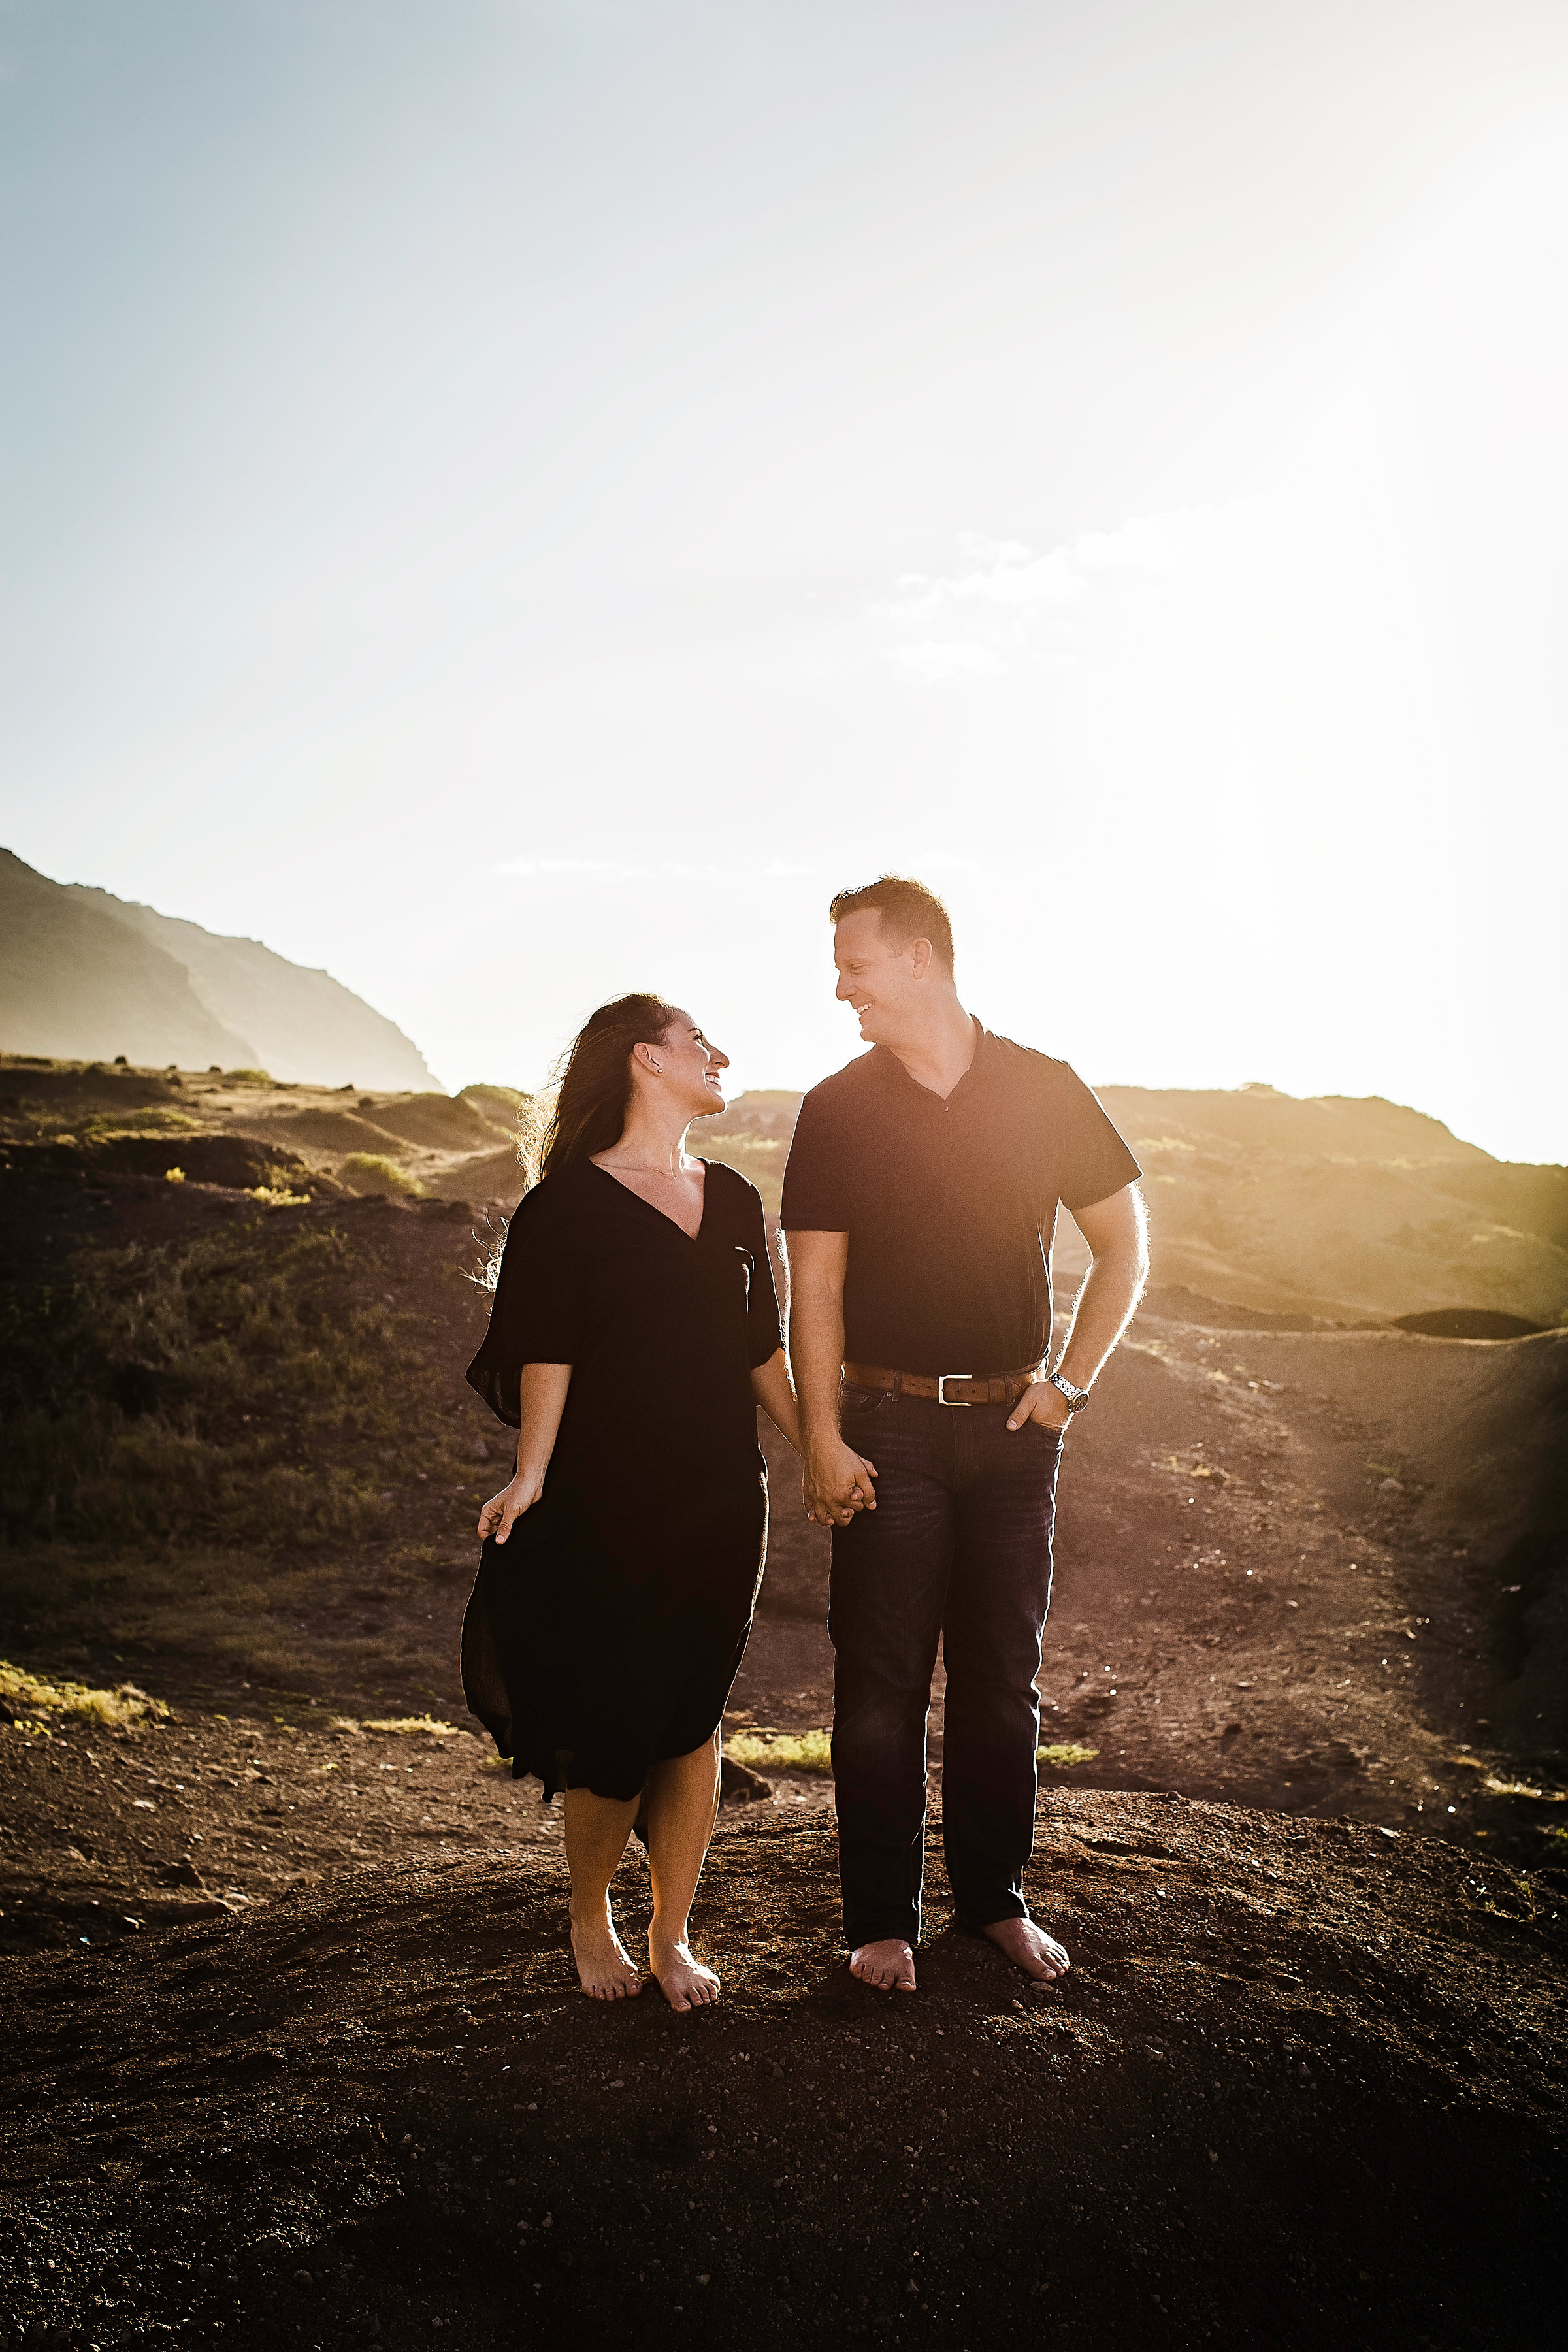 Our Hawaii Sunset Photo Session - Couples Beach Photography - Hawaii Photo Session - Family Beach Photos - Photo Pose Ideas - Couples Photoshoot - Couple Poses - Careena Tipoti Photography - Communikait by Kait Hanson #hawaii #photography #couplephotoshoot #familyphotos #oahu